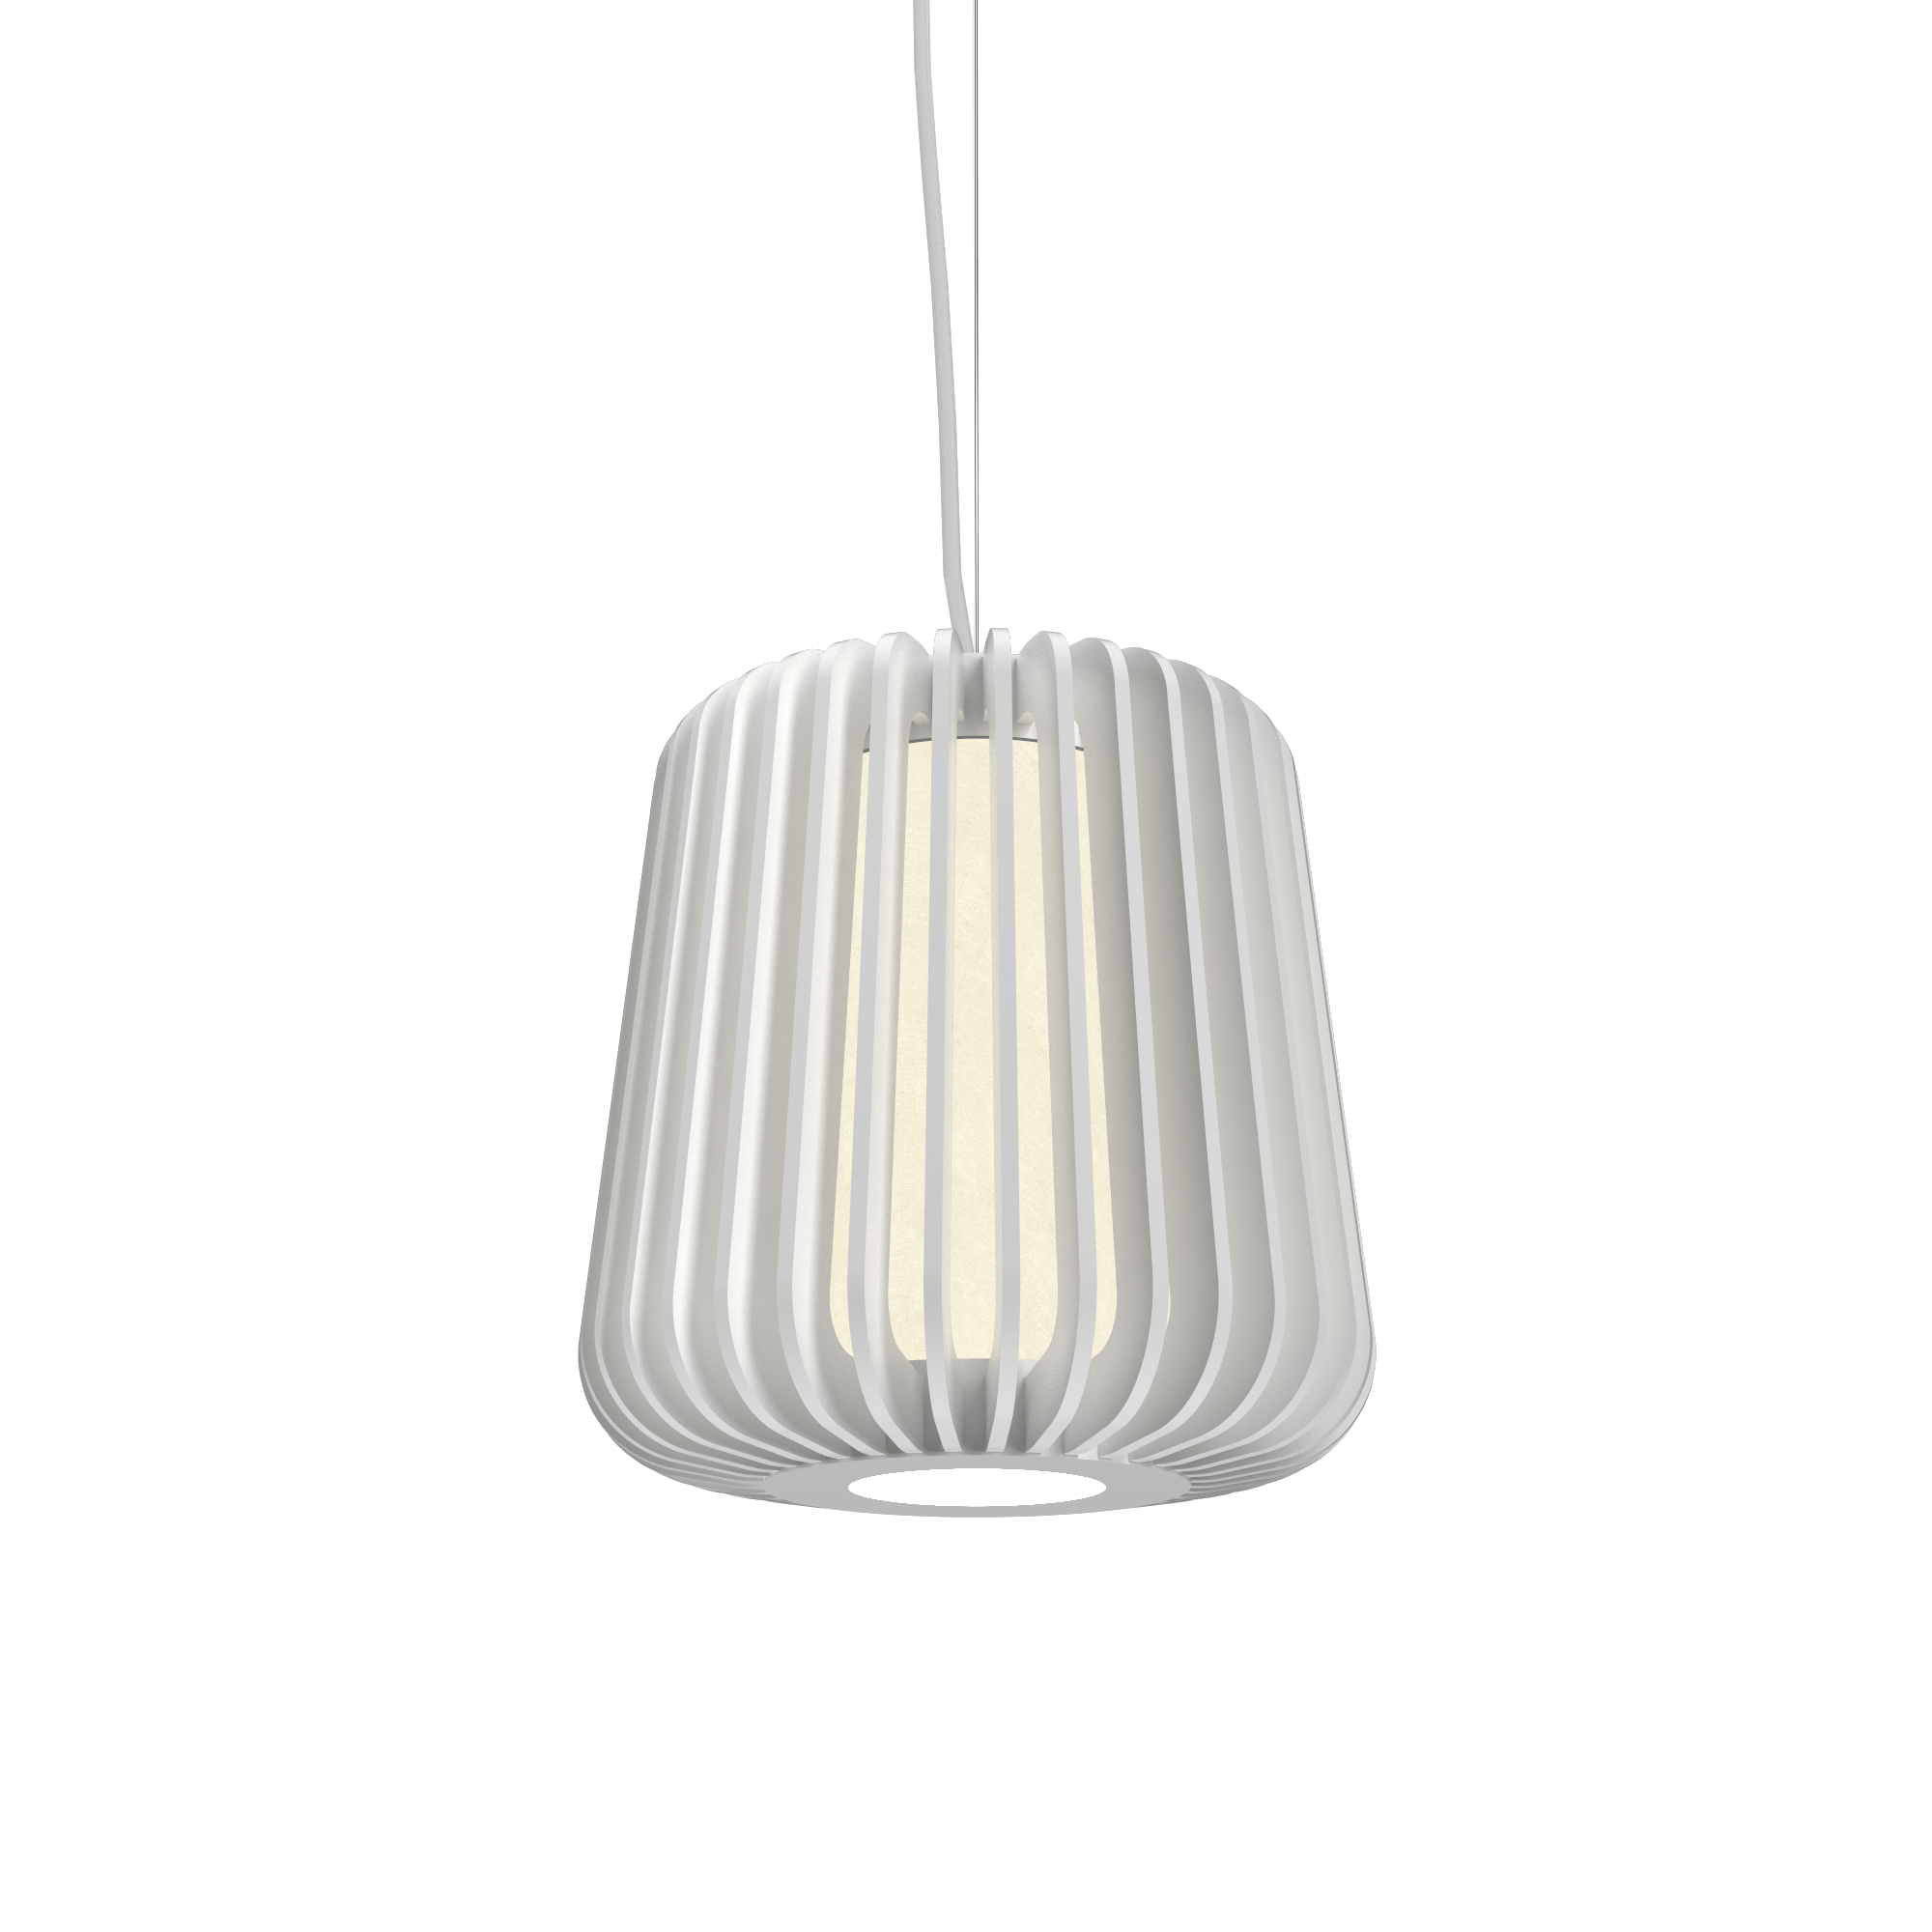 Pendant Lamp Accord Stecche Di Legno 1426 - Stecche Di Legno Line Accord Lighting | 07. White